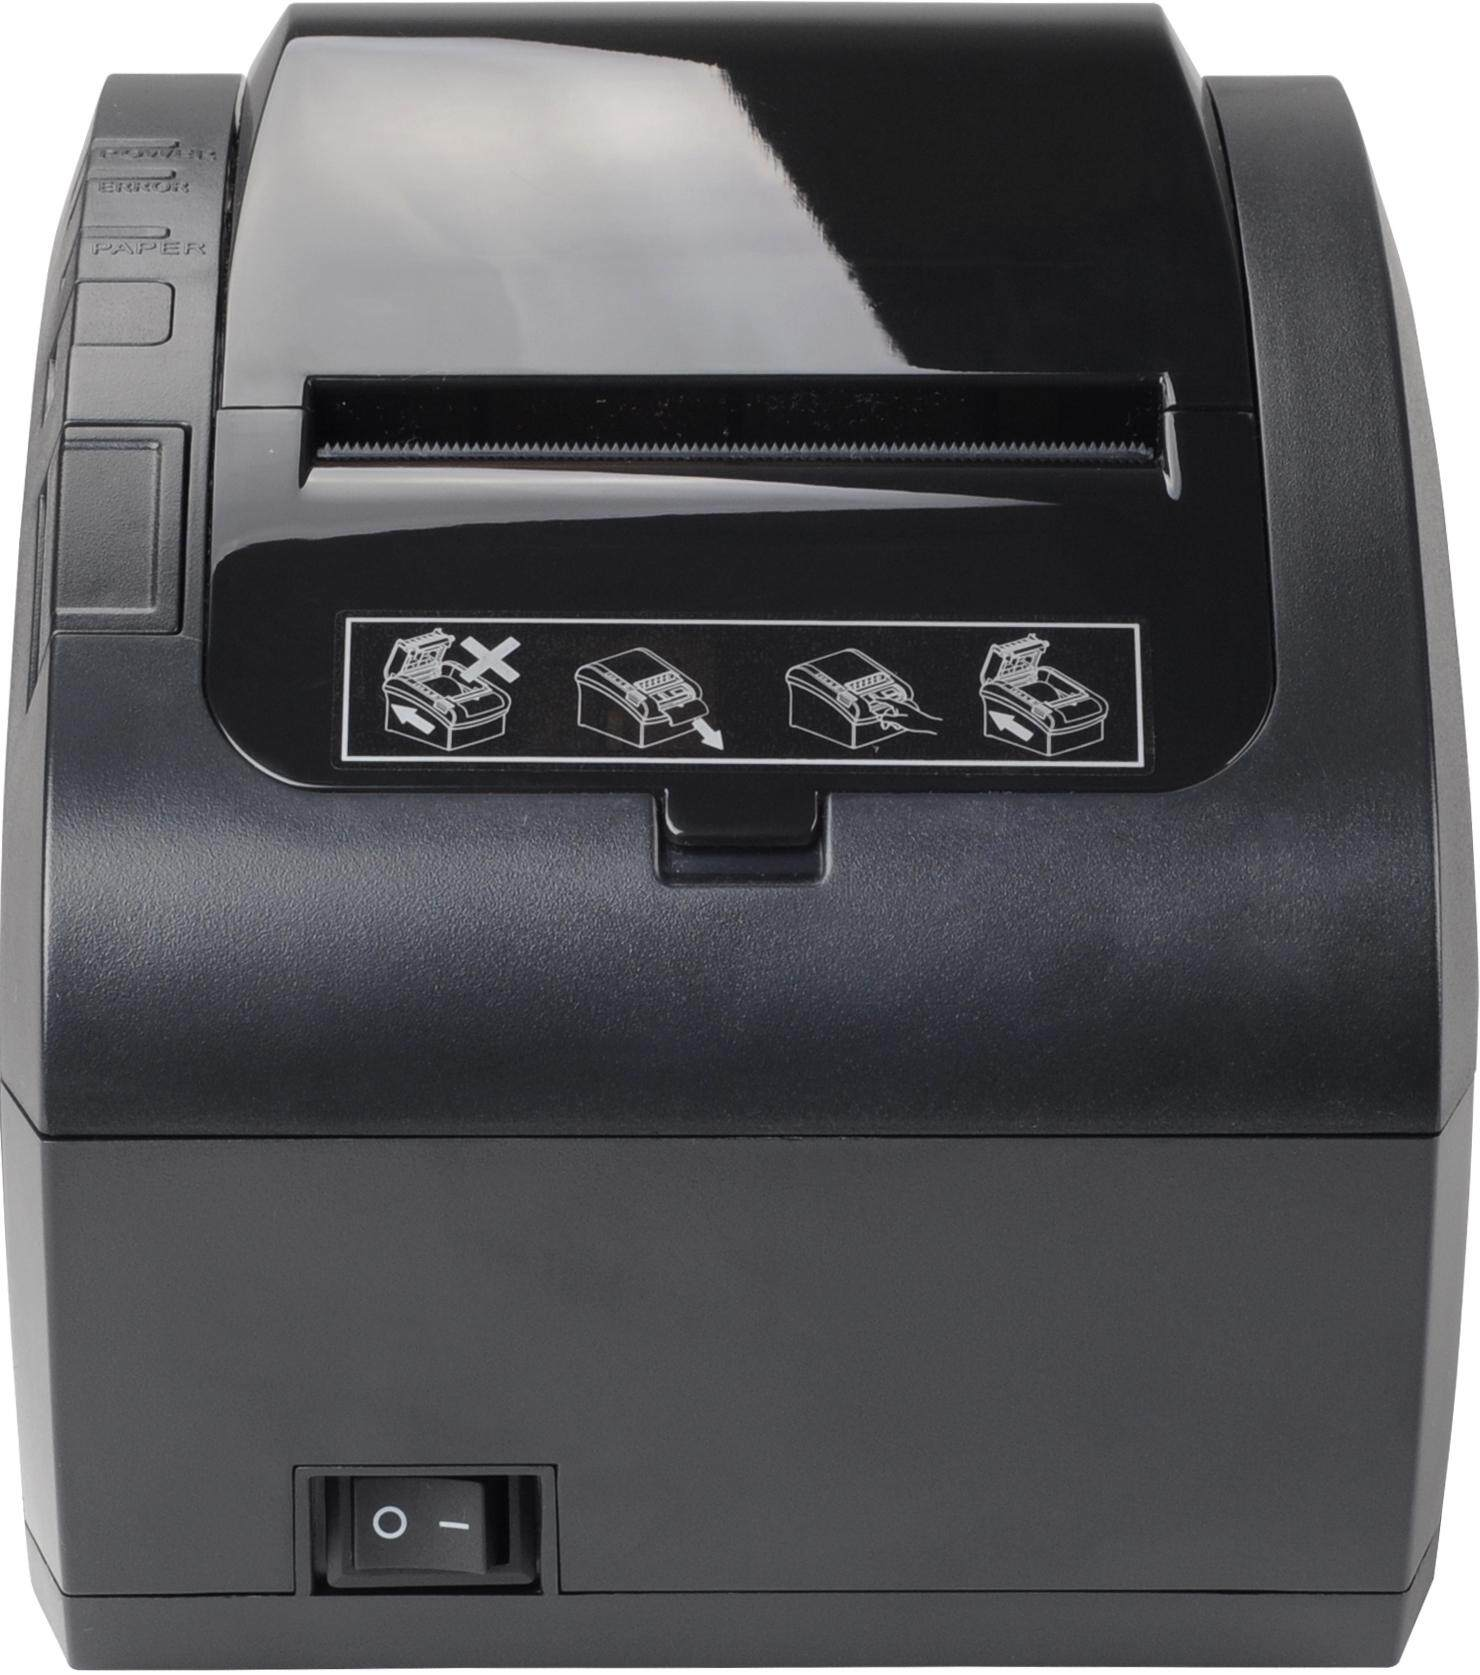 Zy306 Thermal Receipt Printer By Zywell Technology.